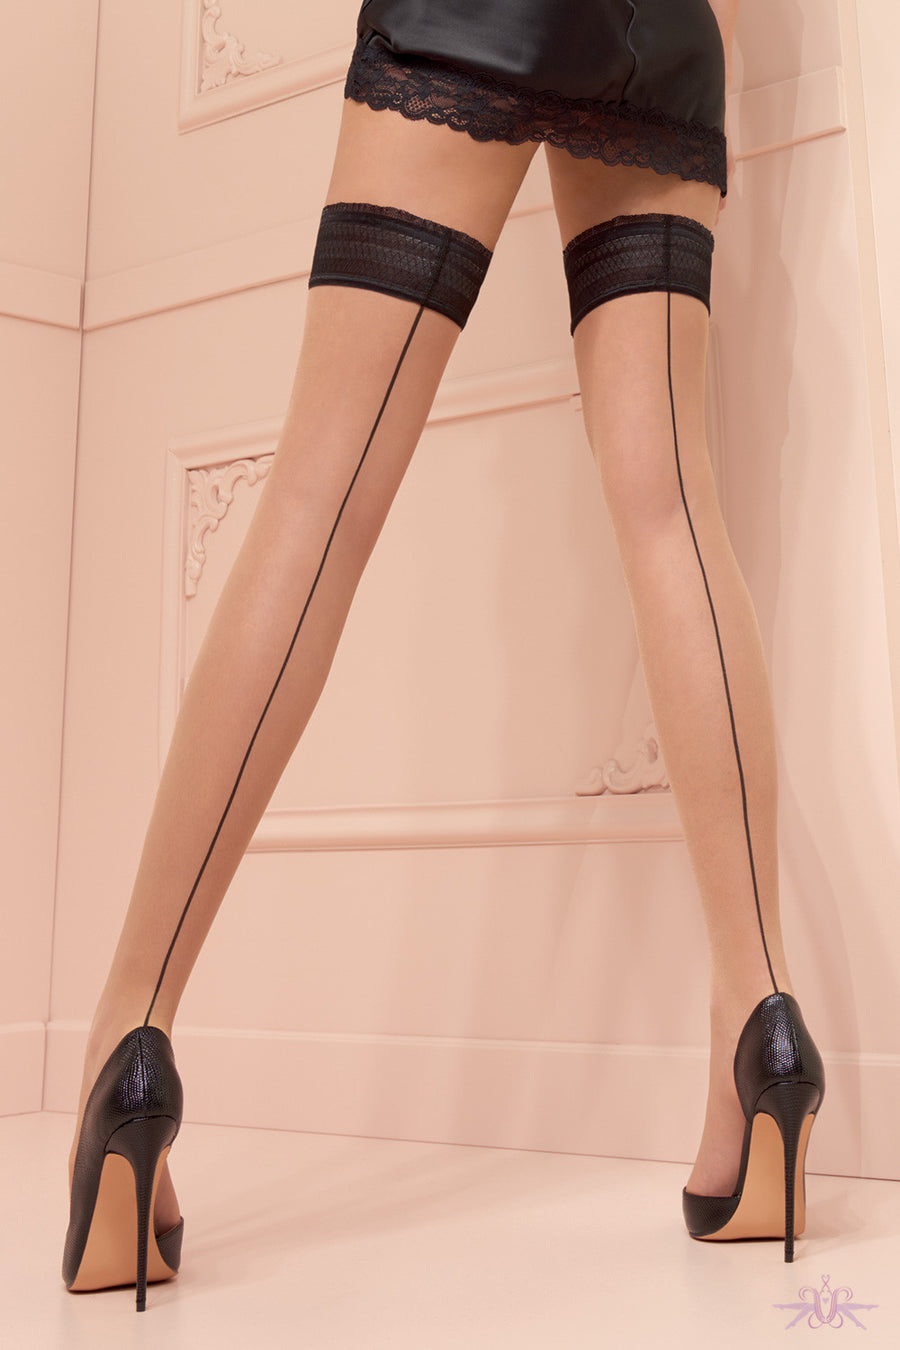 Trasparenze Jessy Hold Ups - Mayfair Stockings